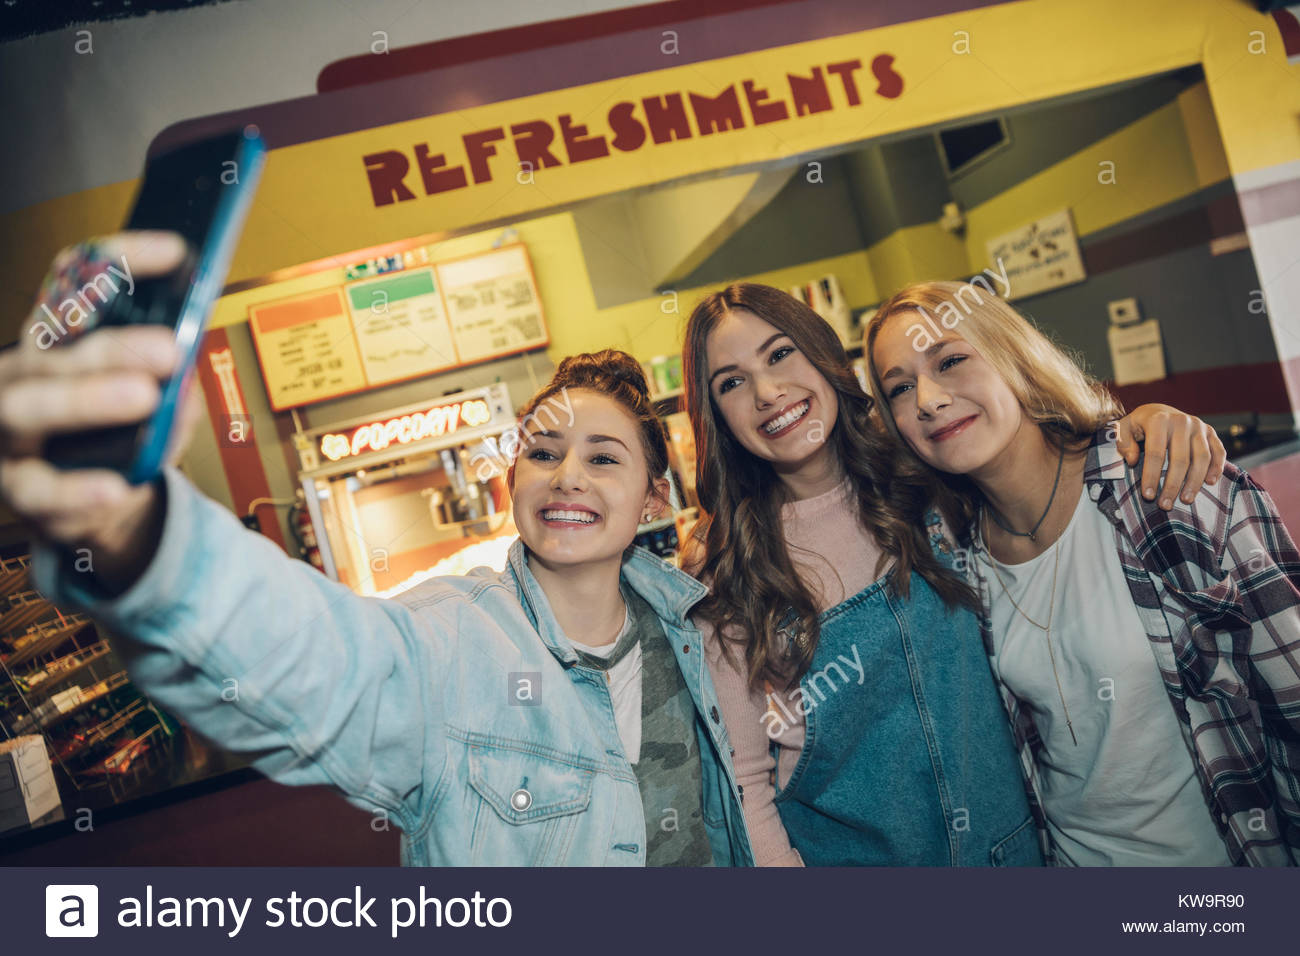 Smiling,enthusiastic Caucasian tween girl friends taking selfie with camera phone in movie theater - Stock Image